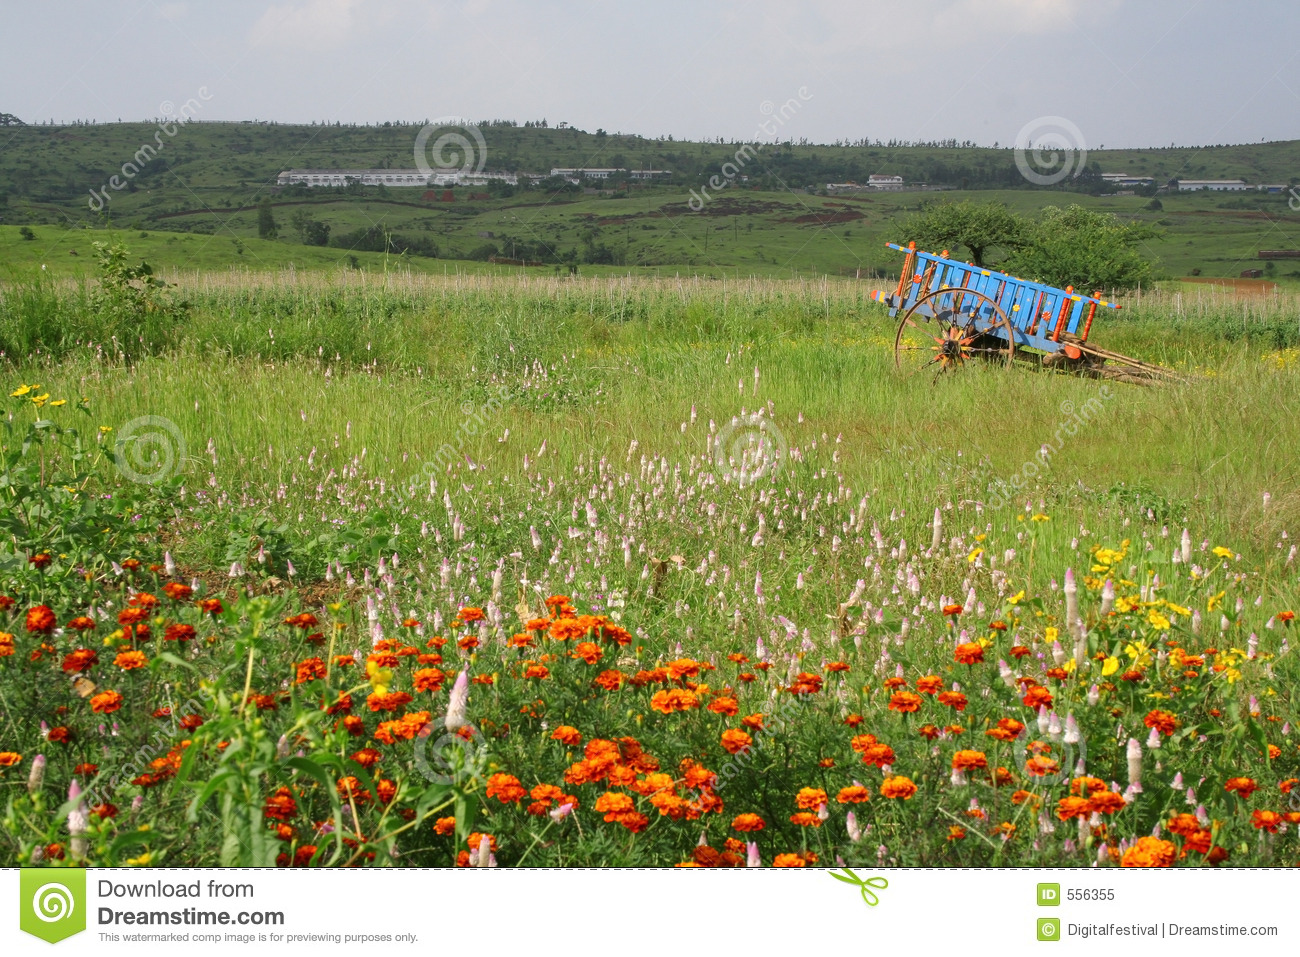 Meadows and flowers in scenic rural india